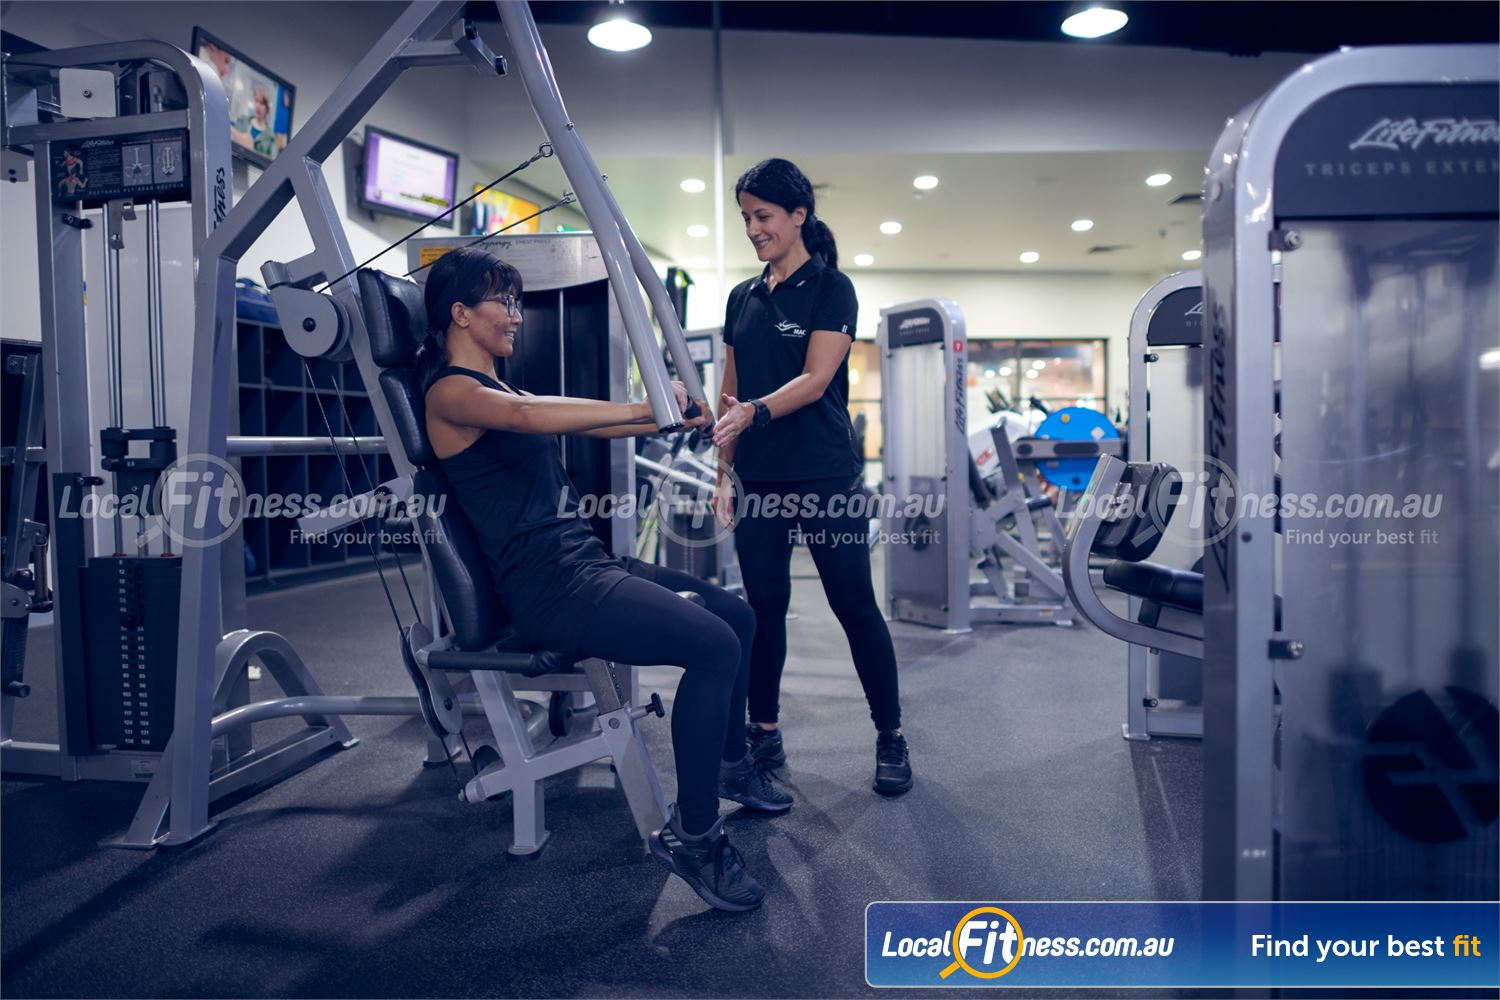 Maribyrnong Aquatic Centre Near Essendon Our Maribyrnong personal trainerscan help with your strength training goals.